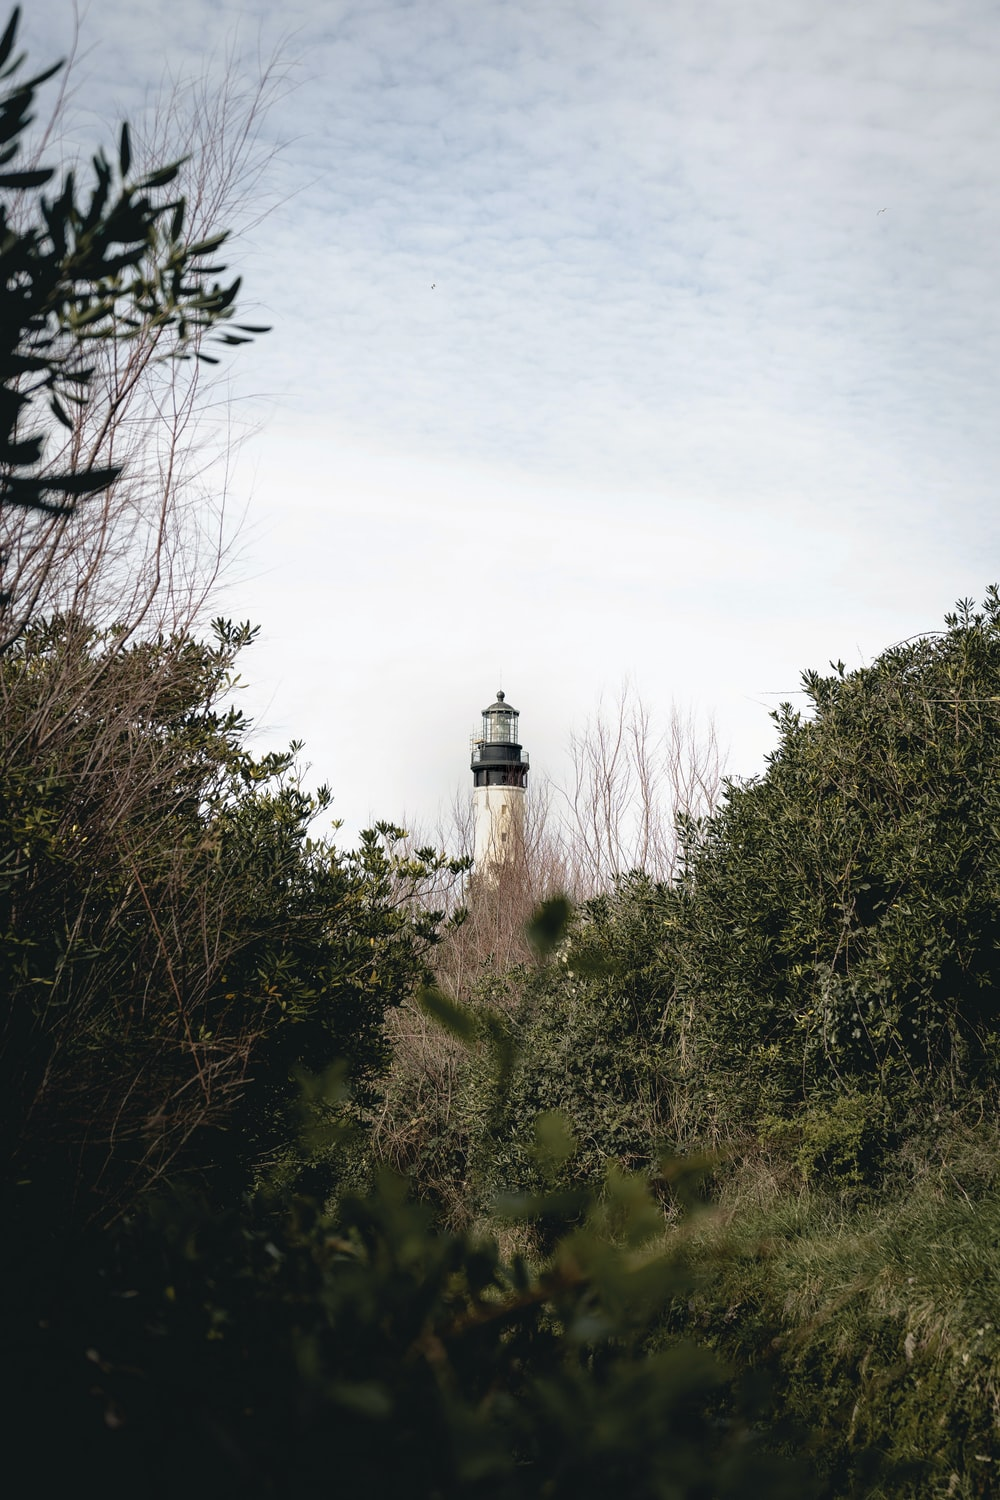 white lighthouse surrounded by green trees under white sky during daytime